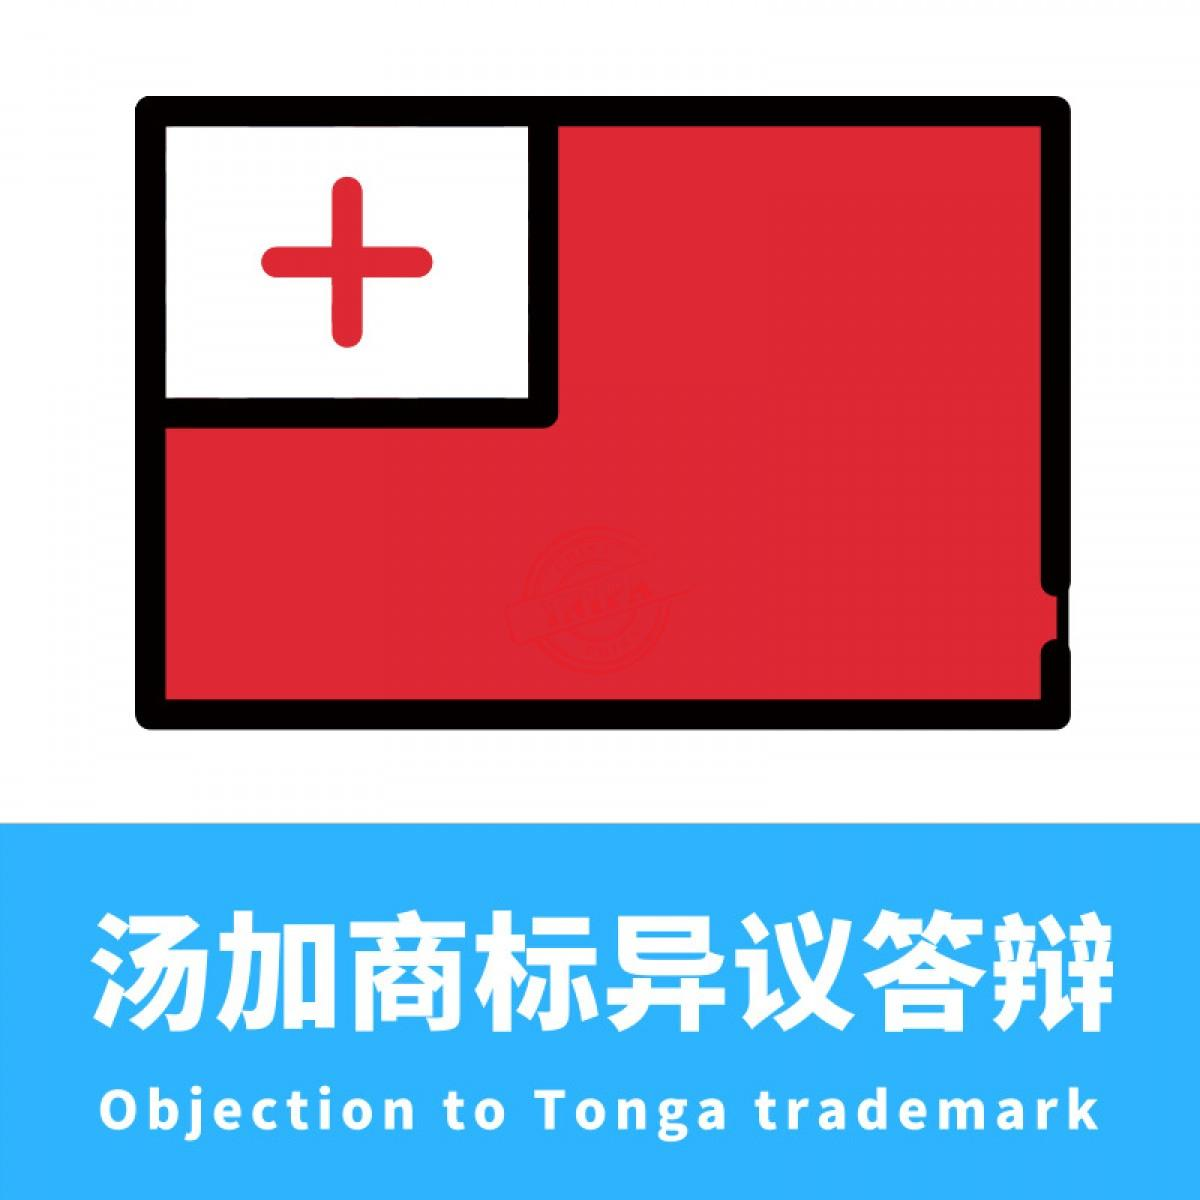 汤加商标异议答辩/Objection to Tonga trademark